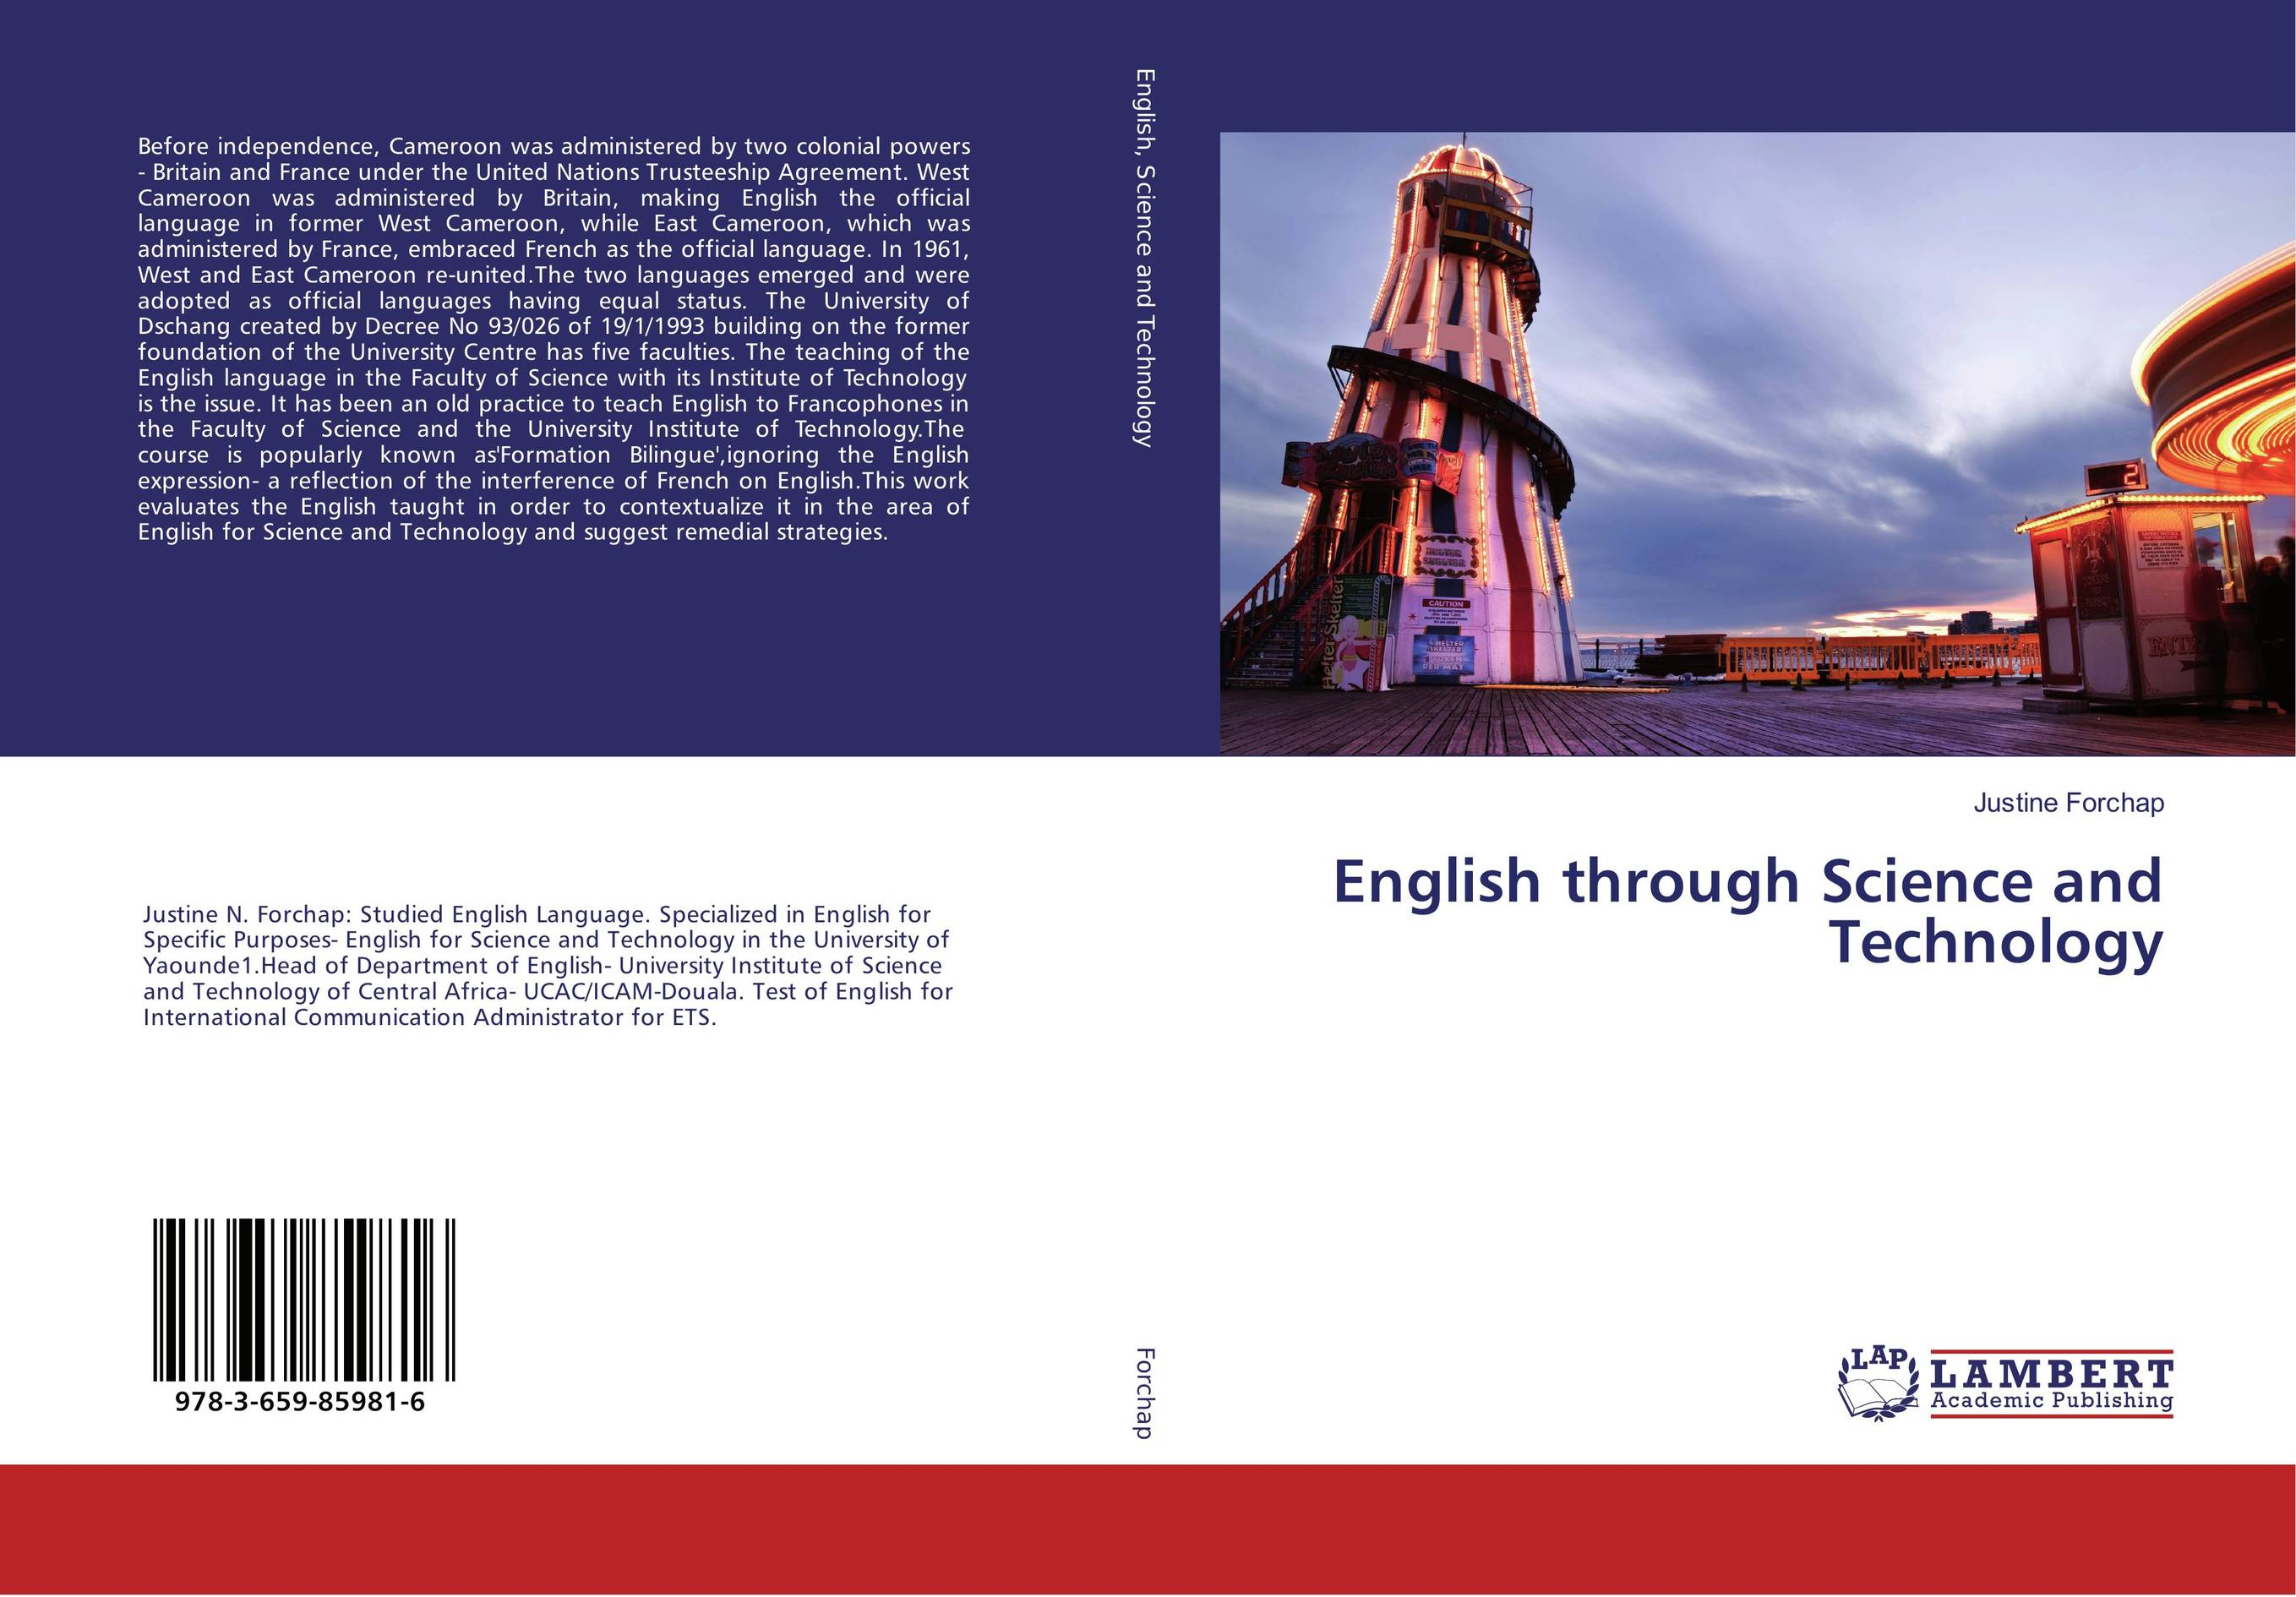 English through Science and Technology mohamed sayed hassan lectures on philosophy of science